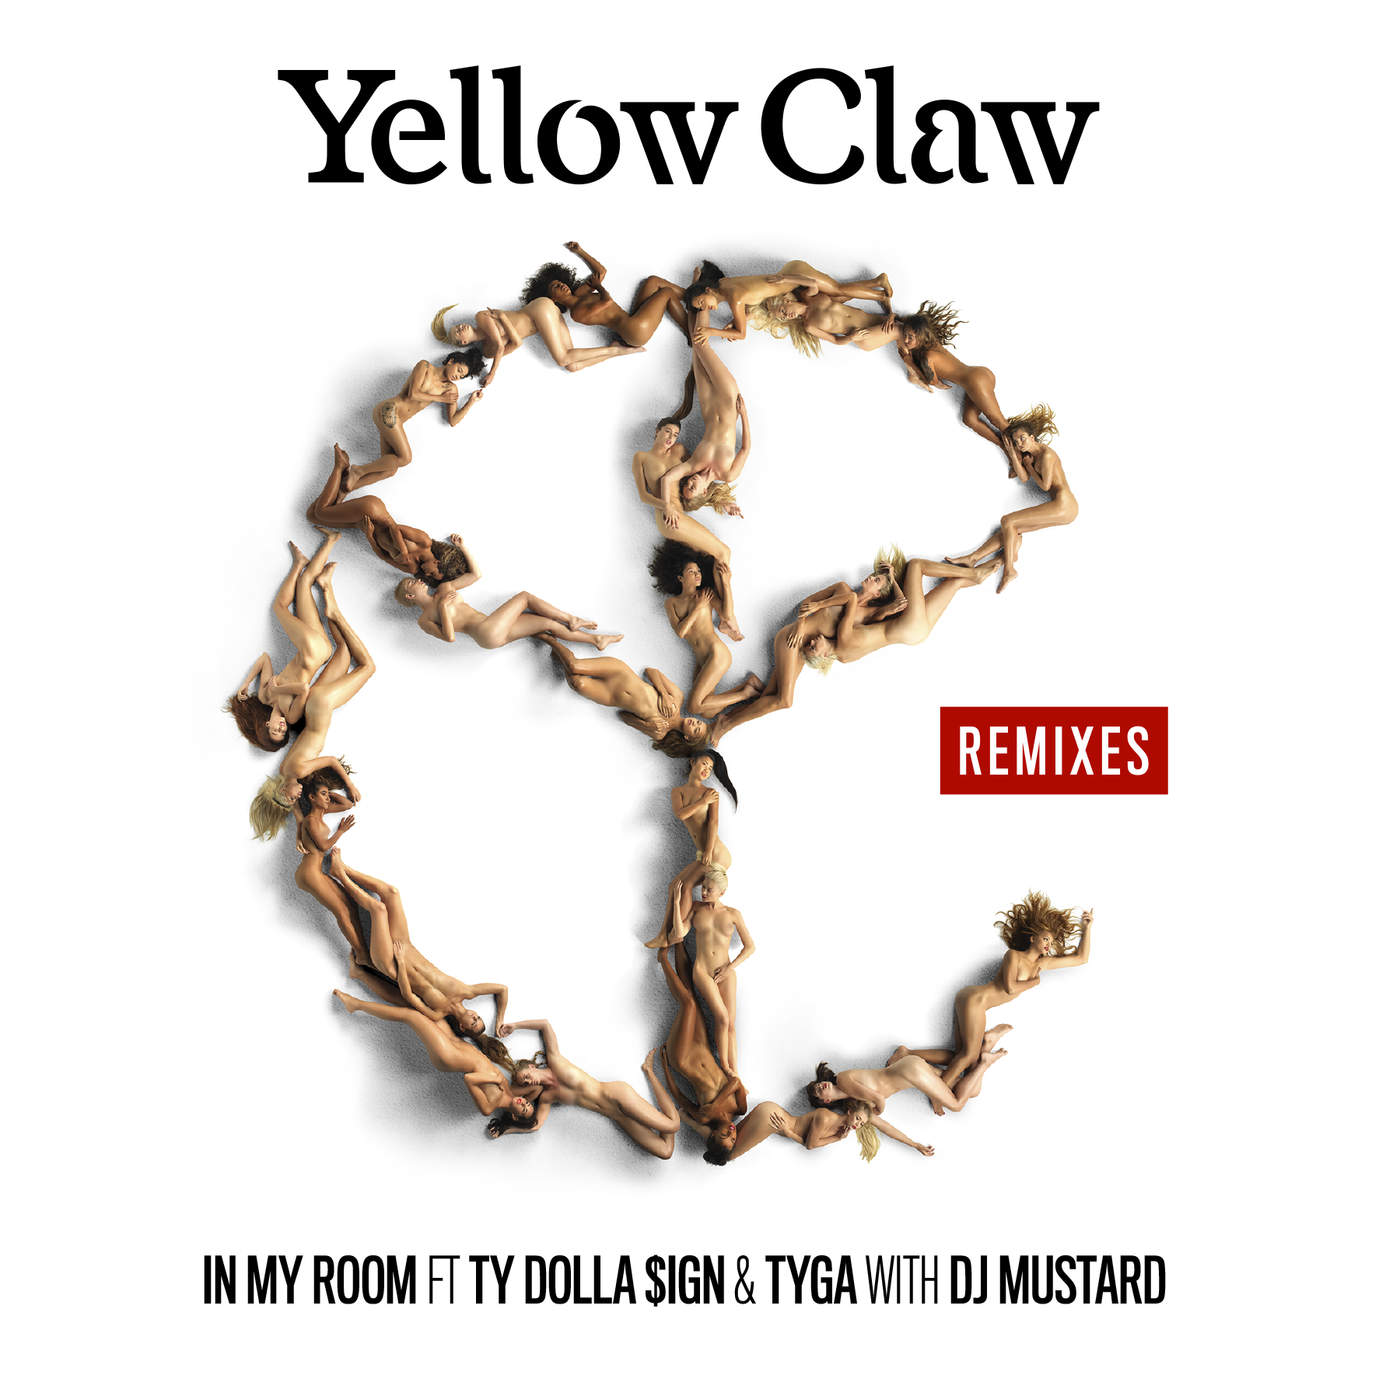 Yellow Claw & DJ Mustard- In My Room (feat. Ty Dolla $ign & Tyga) [Remixes] - EP Cover